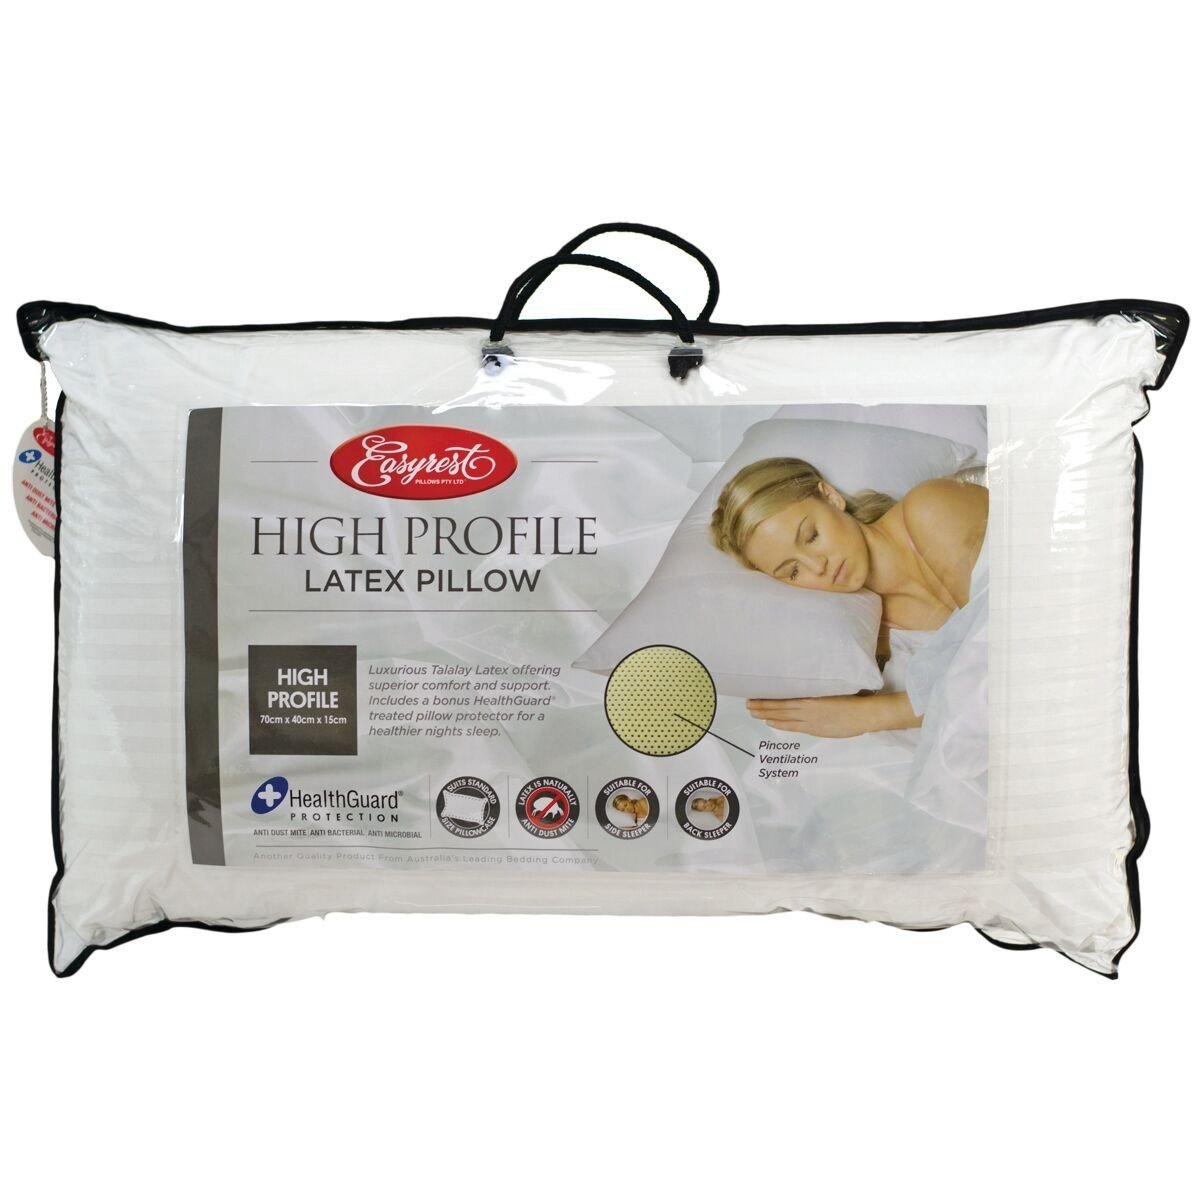 Easy Rest High Profile Latex Pillow